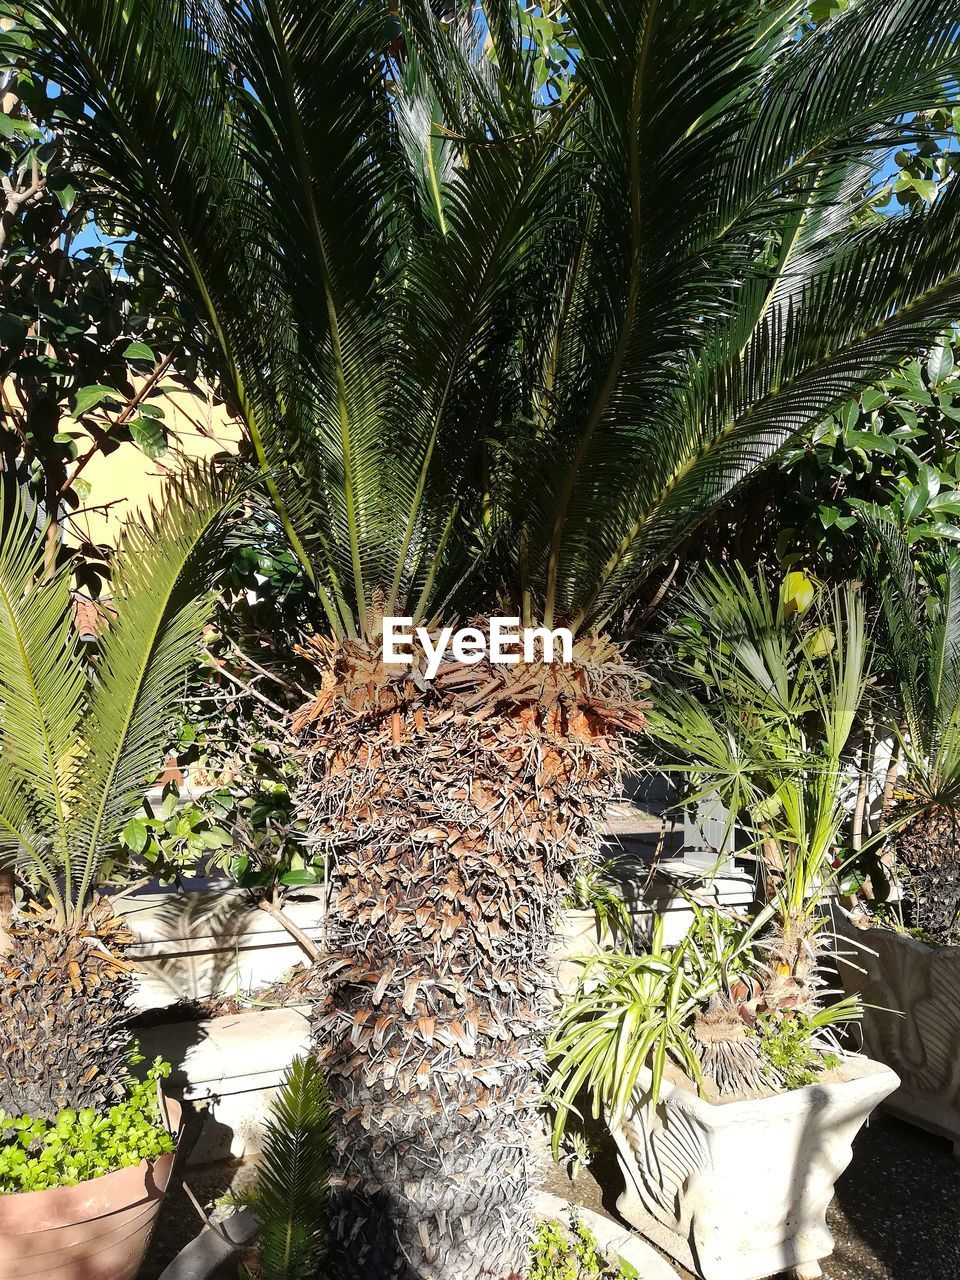 plant, growth, tropical climate, tree, palm tree, nature, day, green color, no people, outdoors, beauty in nature, tree trunk, trunk, date palm tree, potted plant, sunlight, front or back yard, leaf, tropical tree, tranquility, palm leaf